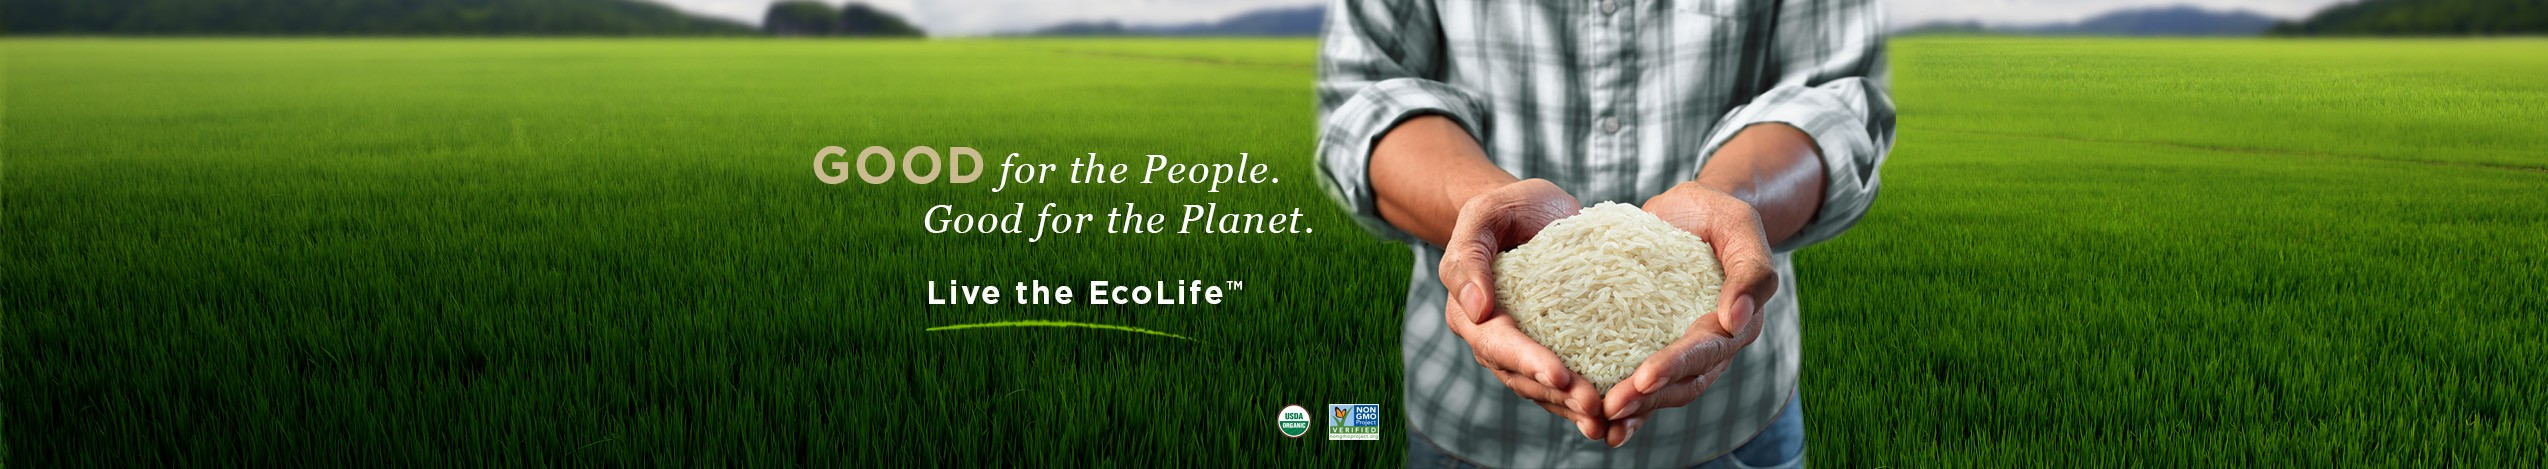 ecolife_hands_hero-image_05